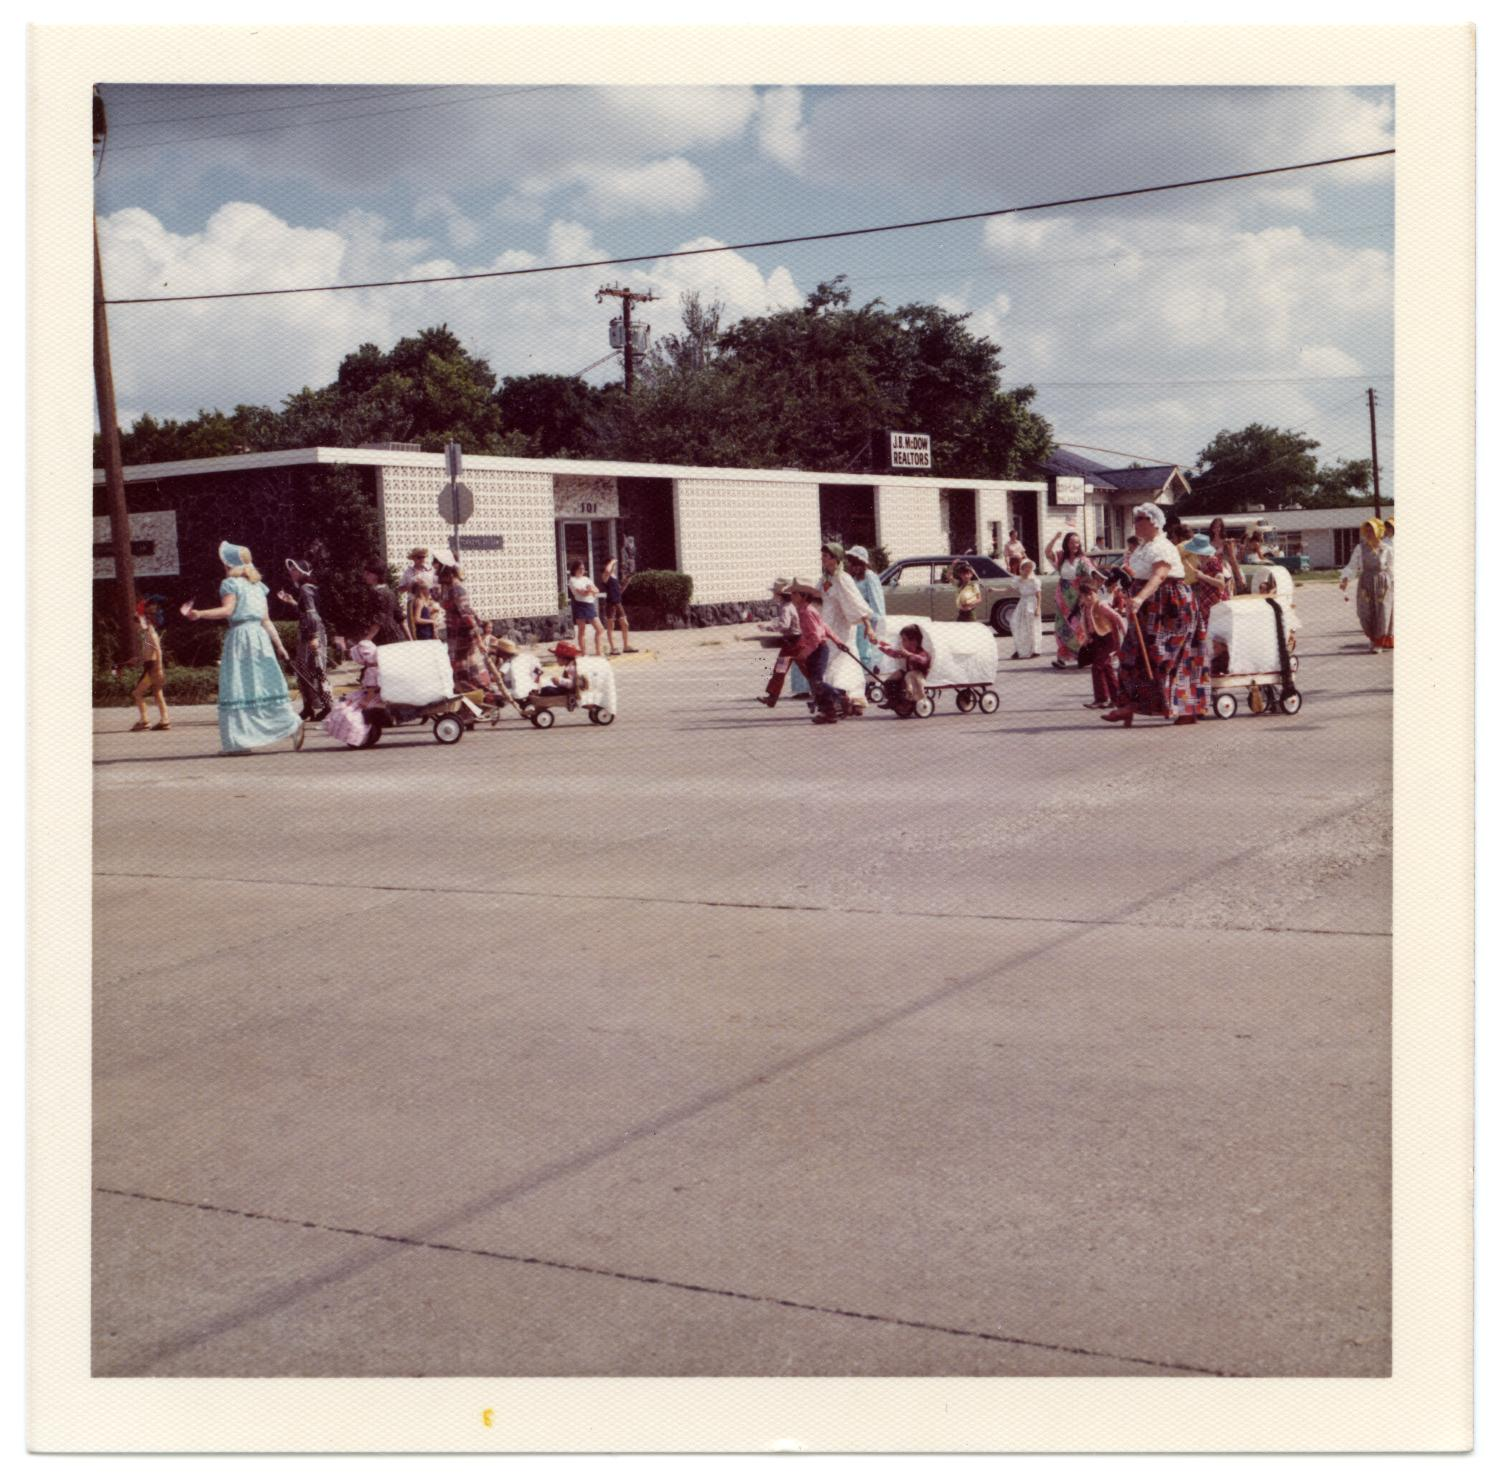 Richardson Centennial Parade, Photograph of a group of people wearing nineteenth-century costumes participating in the Centennial parade on the corner of Main Street and Greenville Avenue. They are pulling toy covered wagons with children riding in them. In the background, there is a building.,